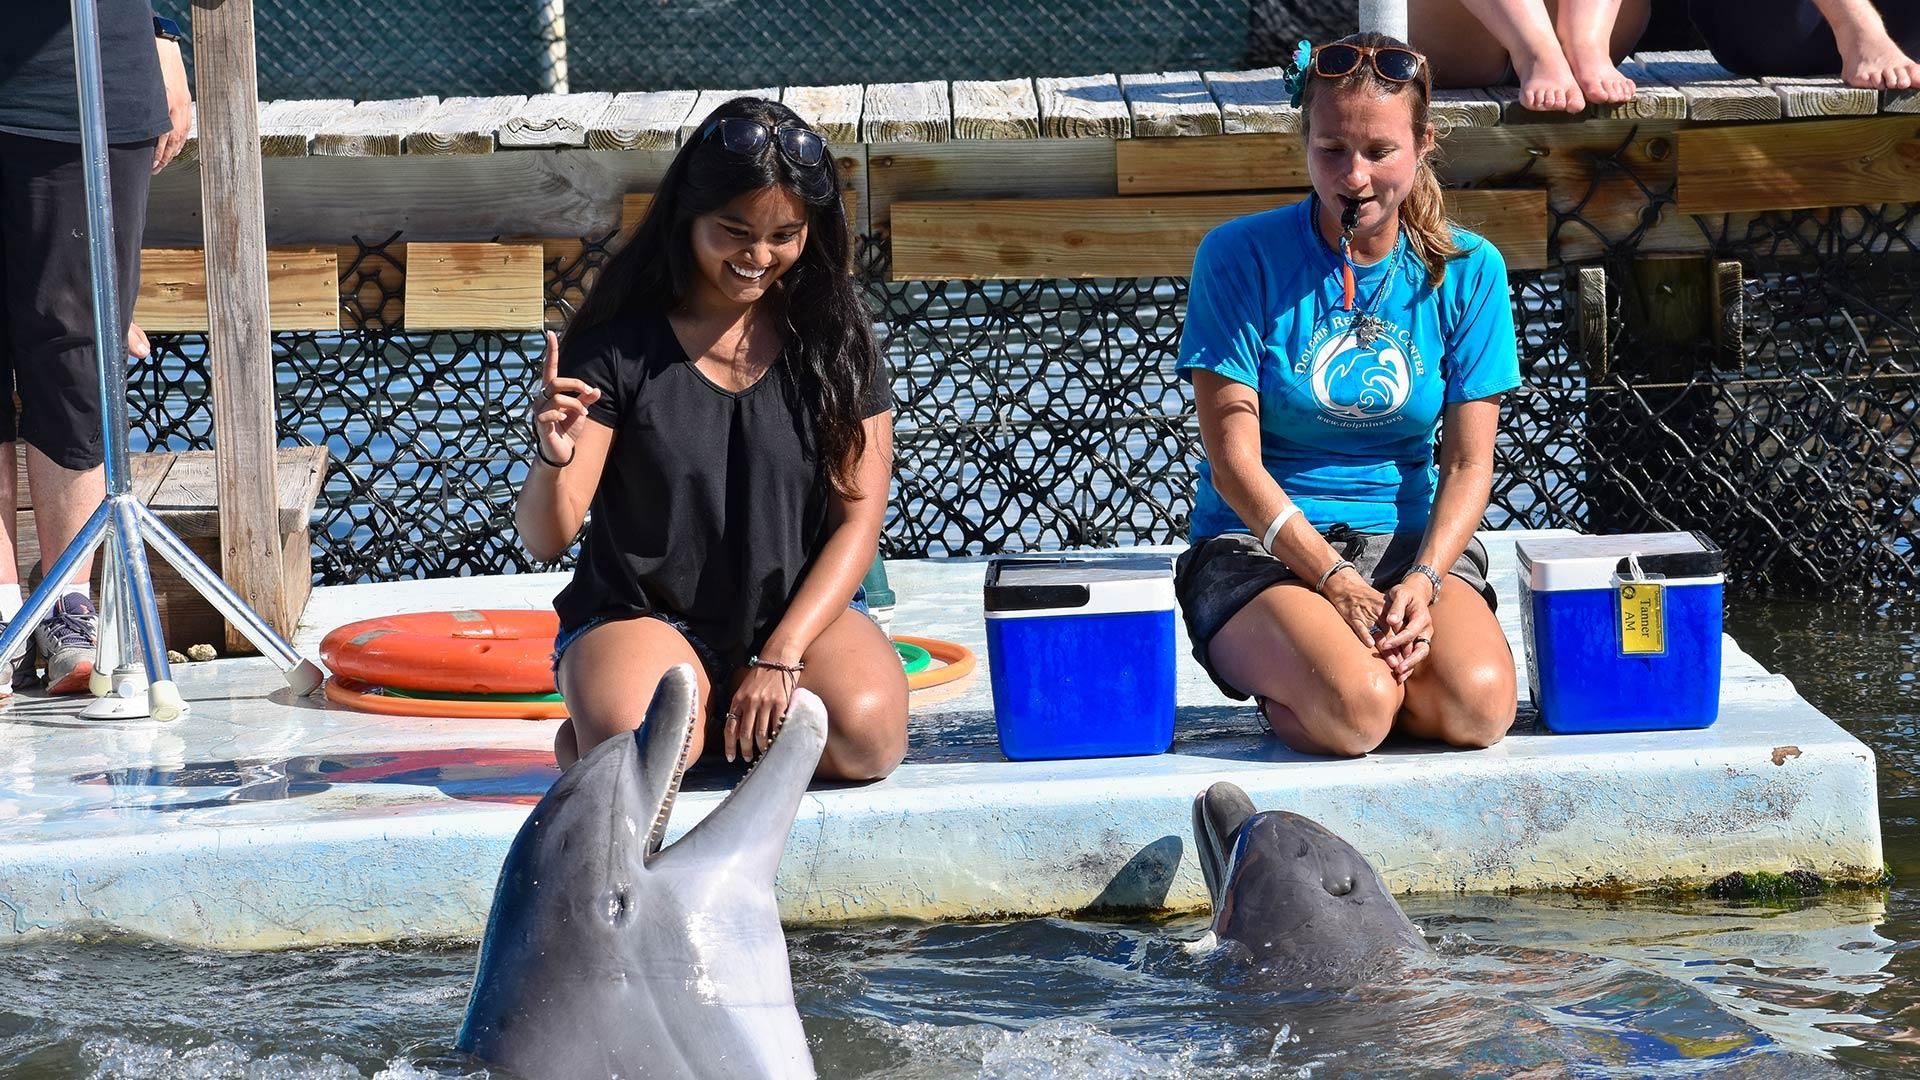 A student holds up a finger while kneeling near the water, where a dolphin responds.